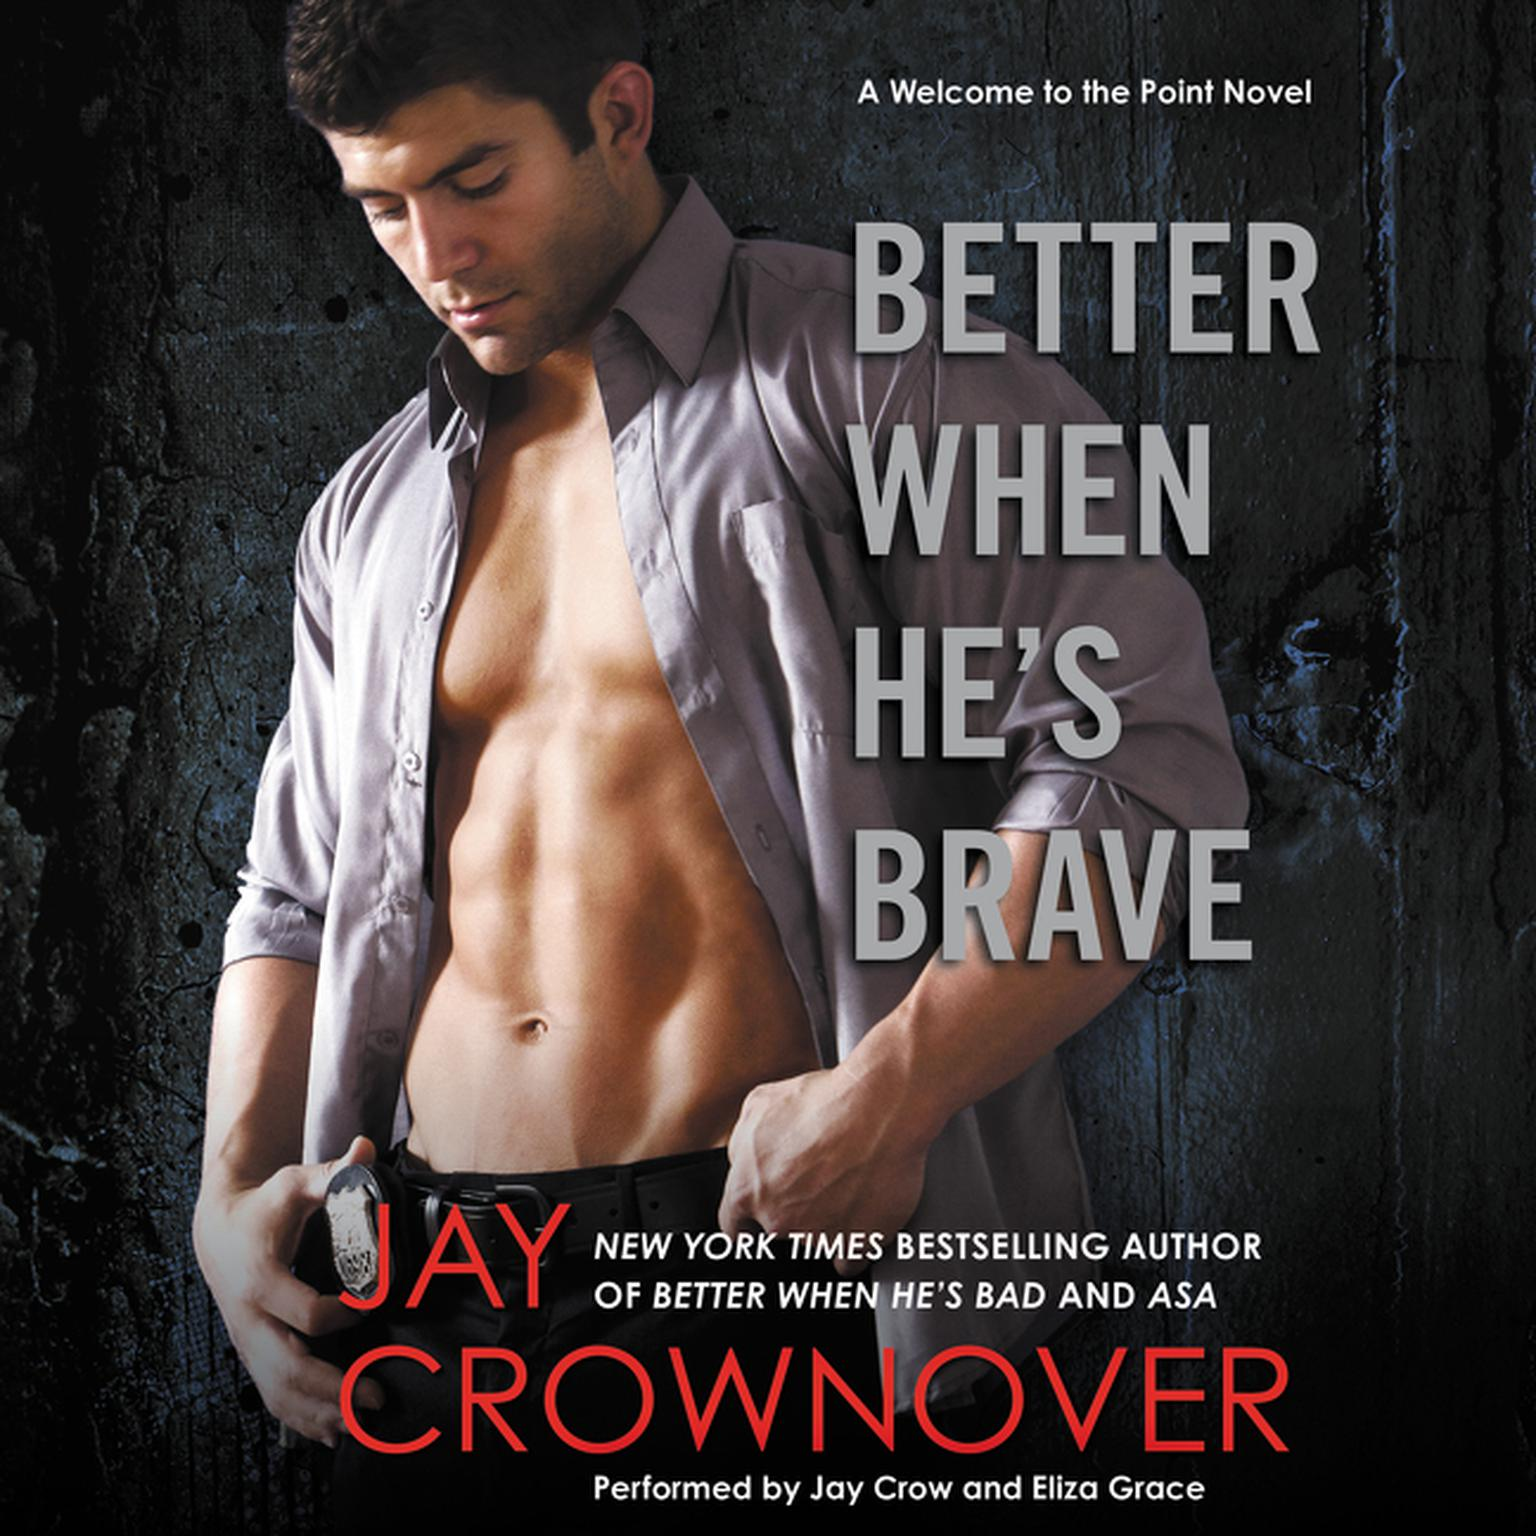 Printable Better When He's Brave: A Welcome to the Point Novel Audiobook Cover Art